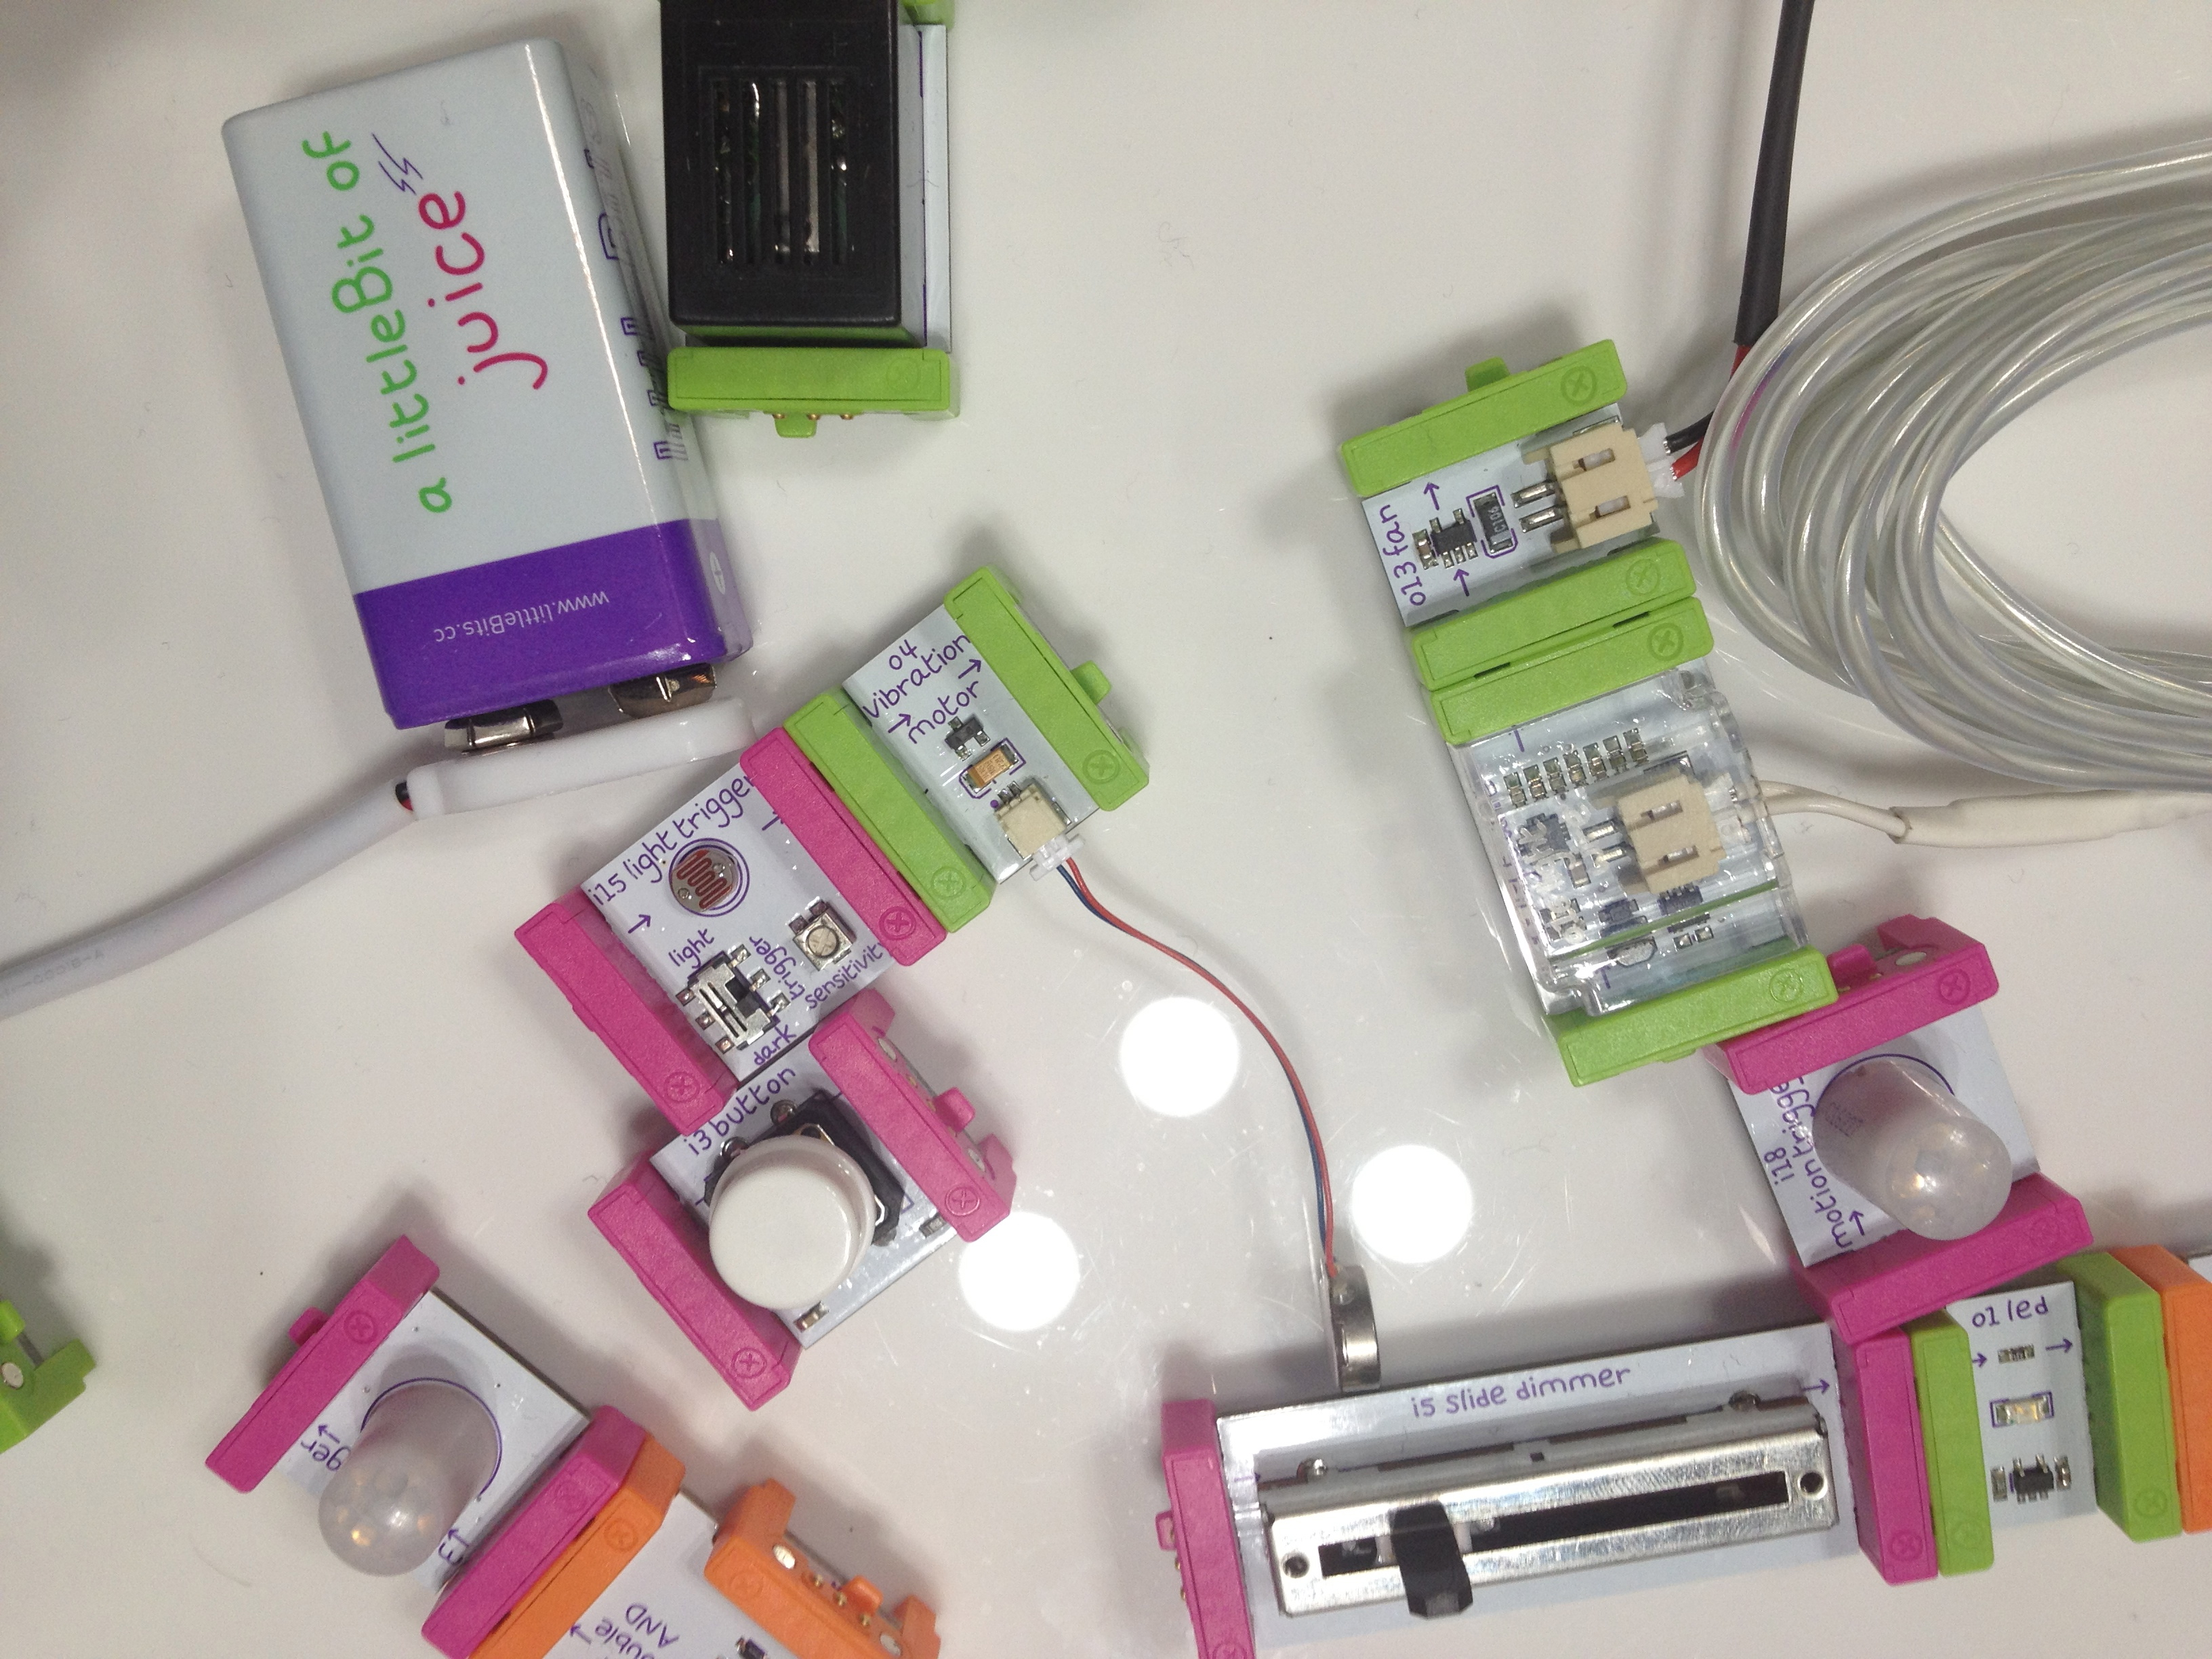 LittleBits modules. Photo by Rani Molla.